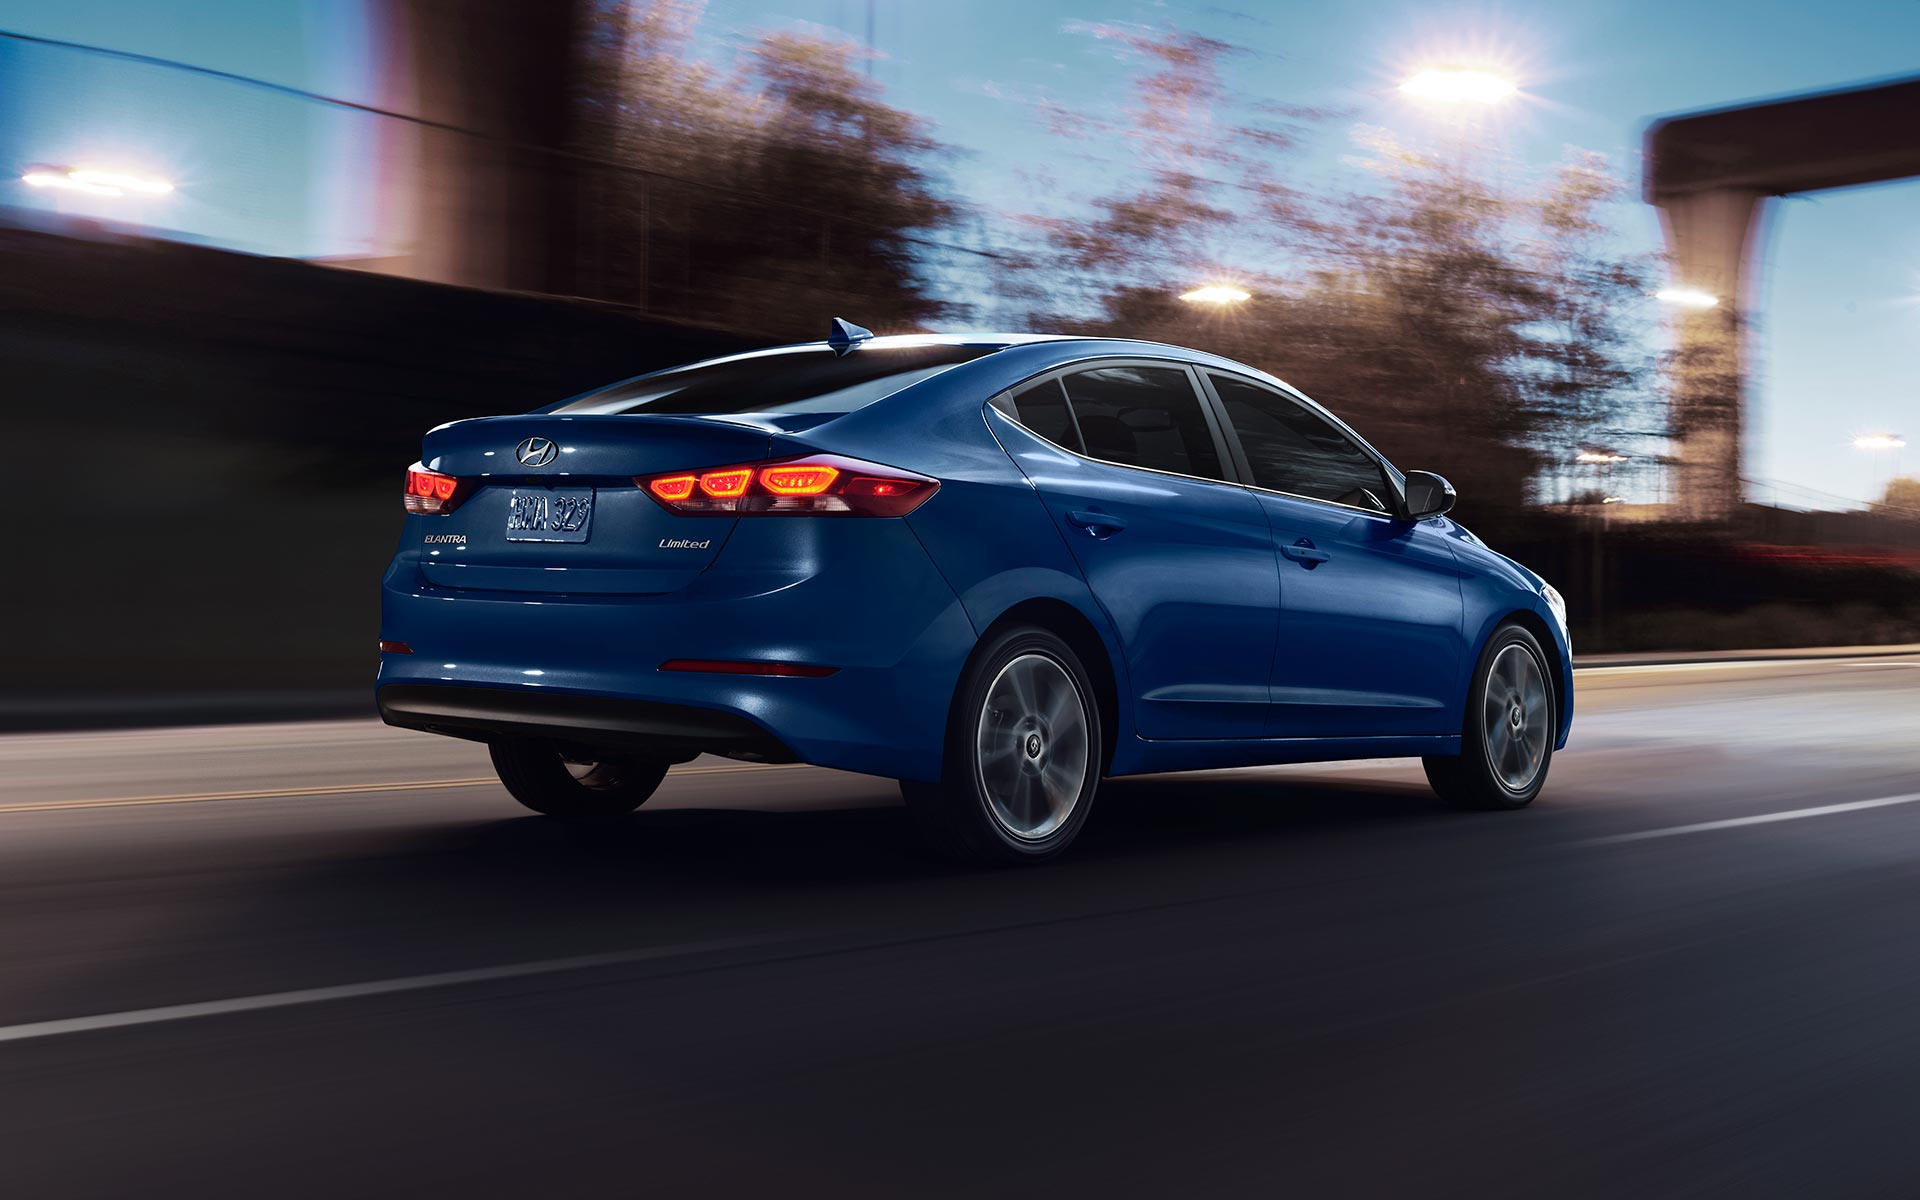 Used Hyundai Elantra for Sale in Southfield MI - 2018 Hyundai Elantra's Overview